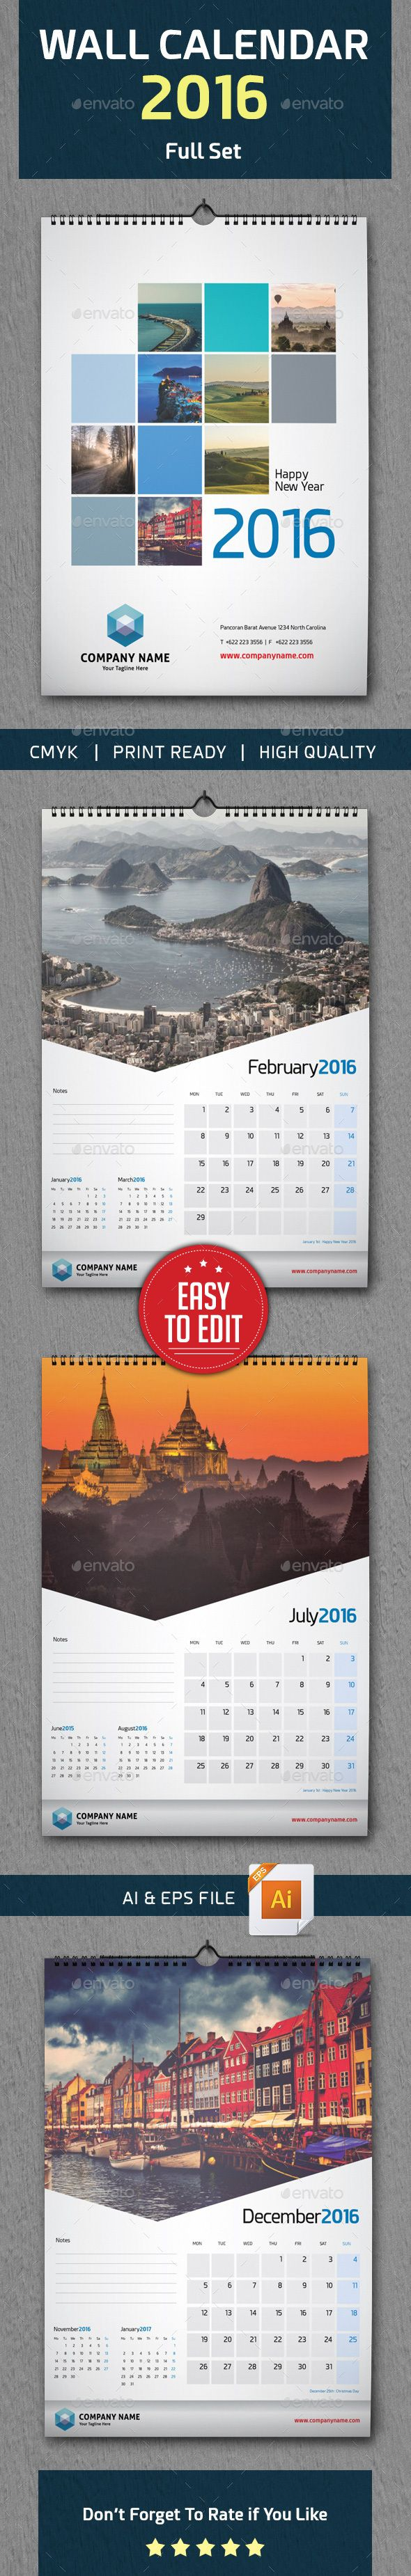 Wall Calendar 2016 Vector Template EPS, AI #design Download: http://graphicriver.net/item/wall-calendar-2016/13577618?ref=ksioks